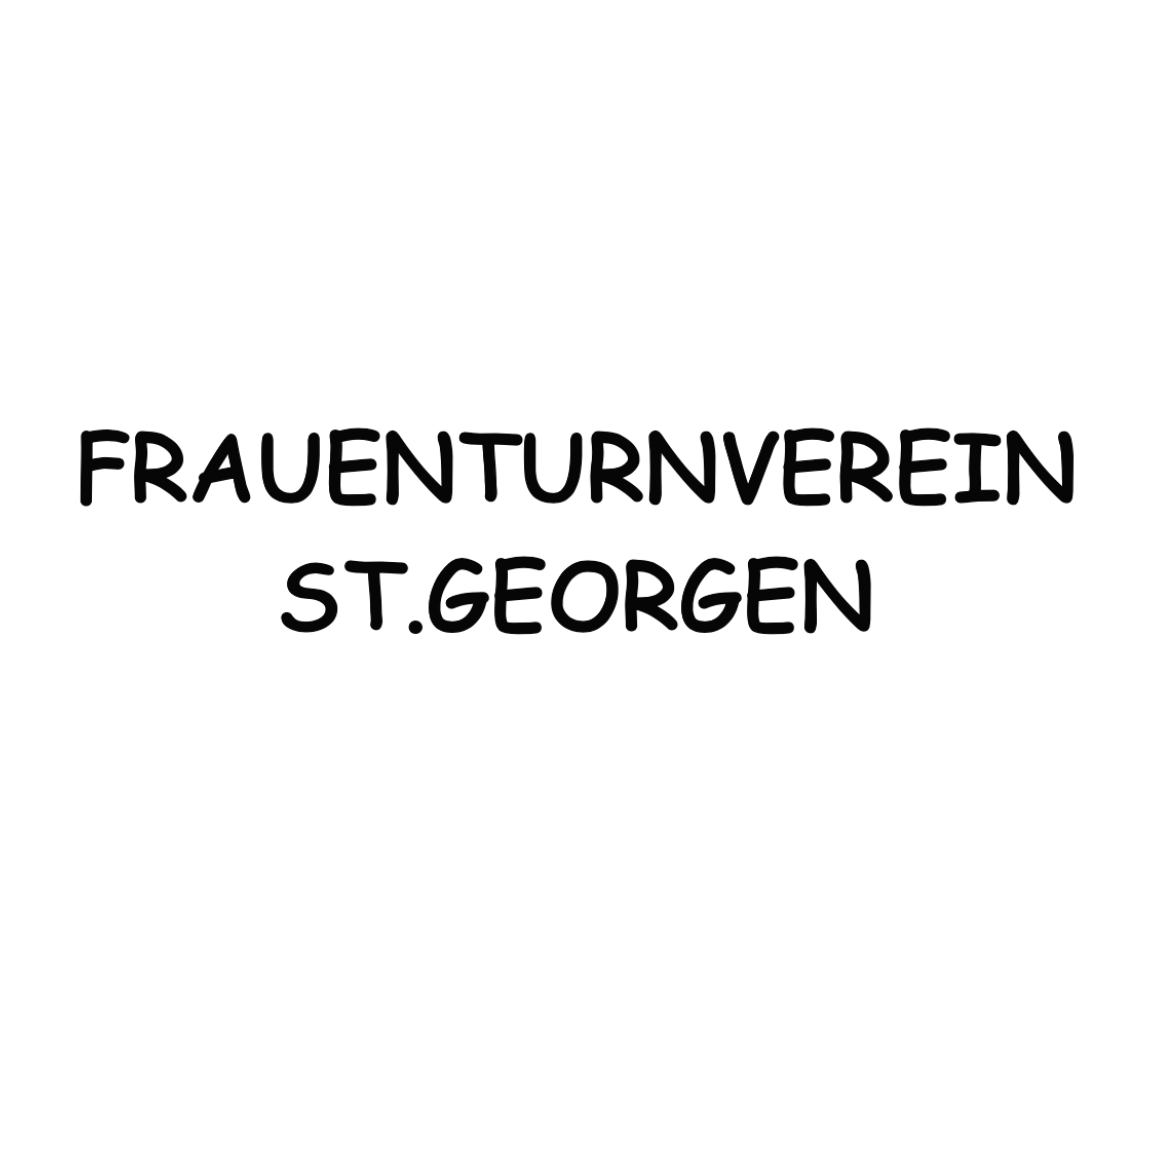 Frauenturnverein St-Georgen